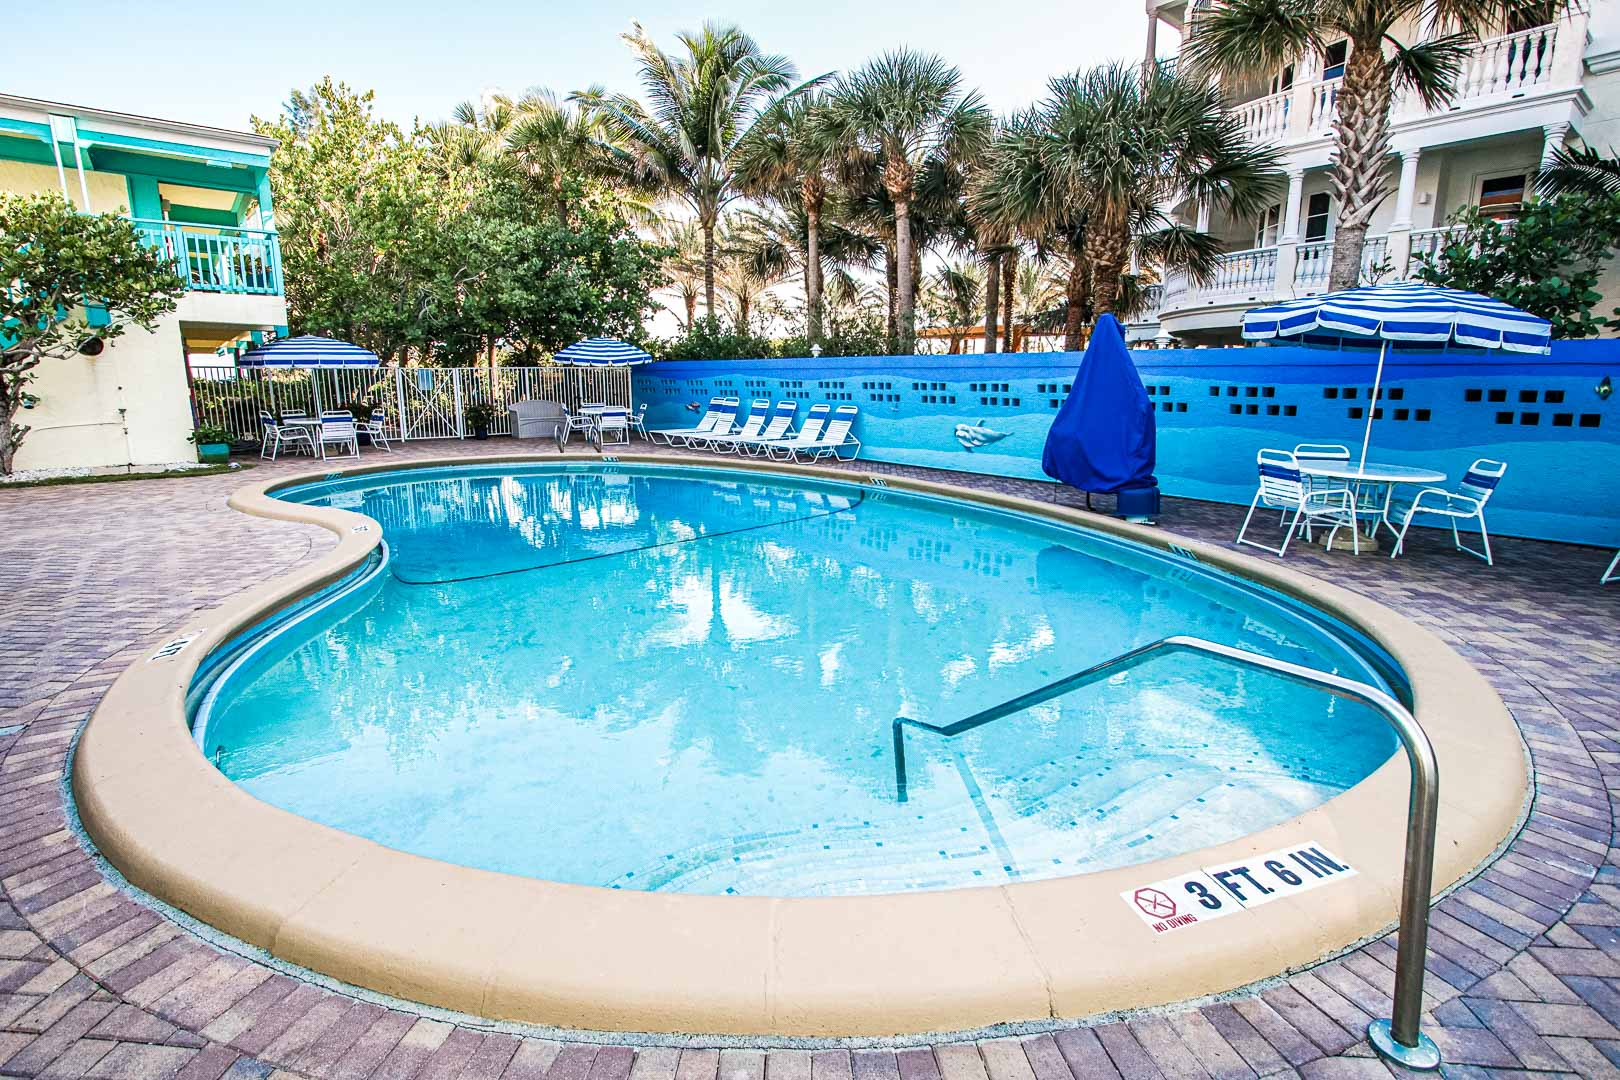 An expansive swimming pool at VRI's Sand Dune Shores in Florida.